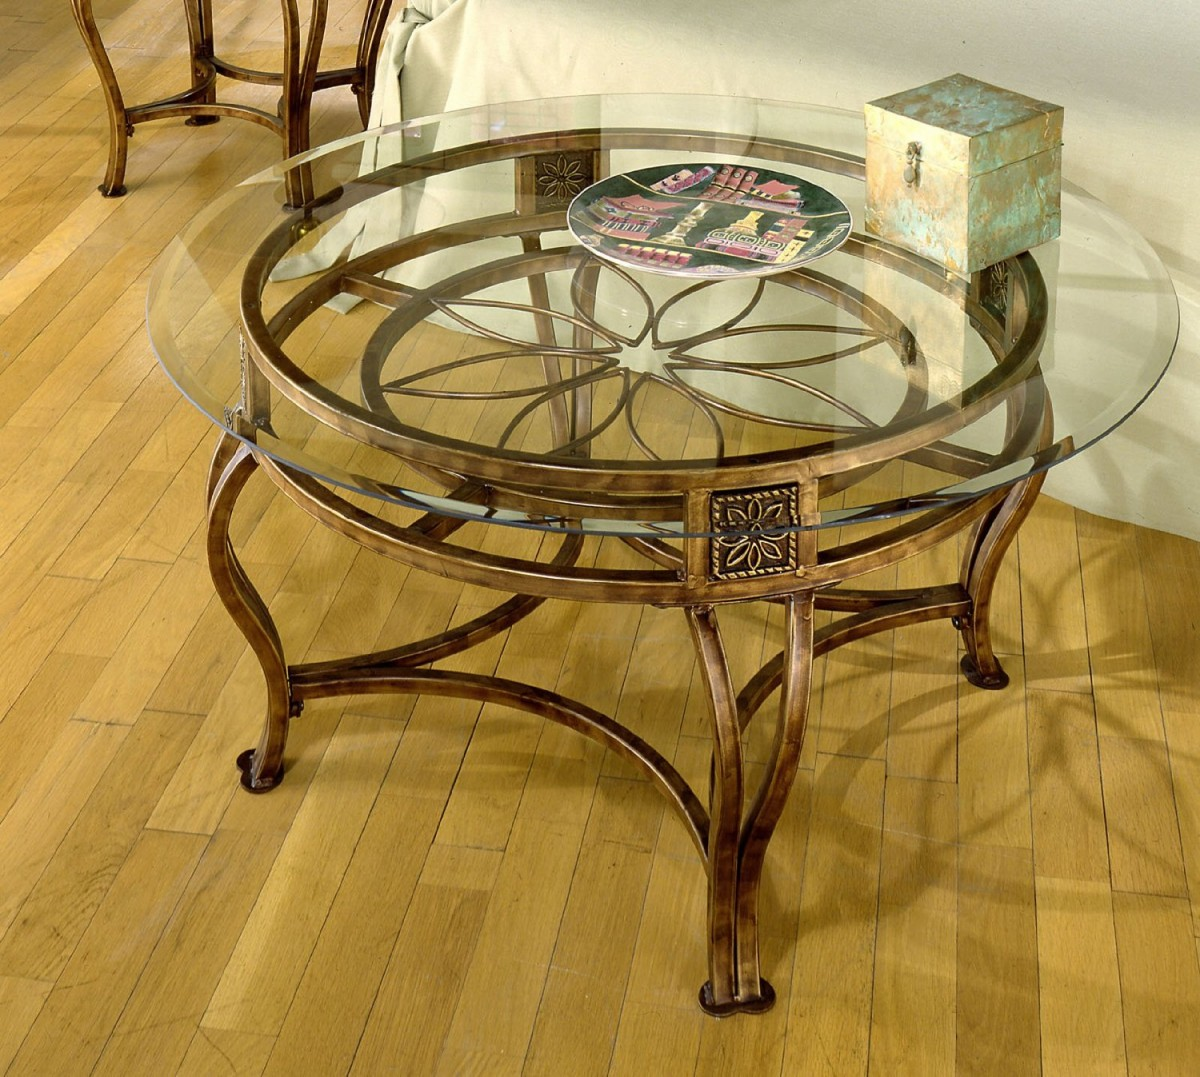 Metal Glass Coffee Table Furniture Inspiration Ideas Simple And Neat Look The Shelf Underneath Is For Magazines (Image 3 of 10)